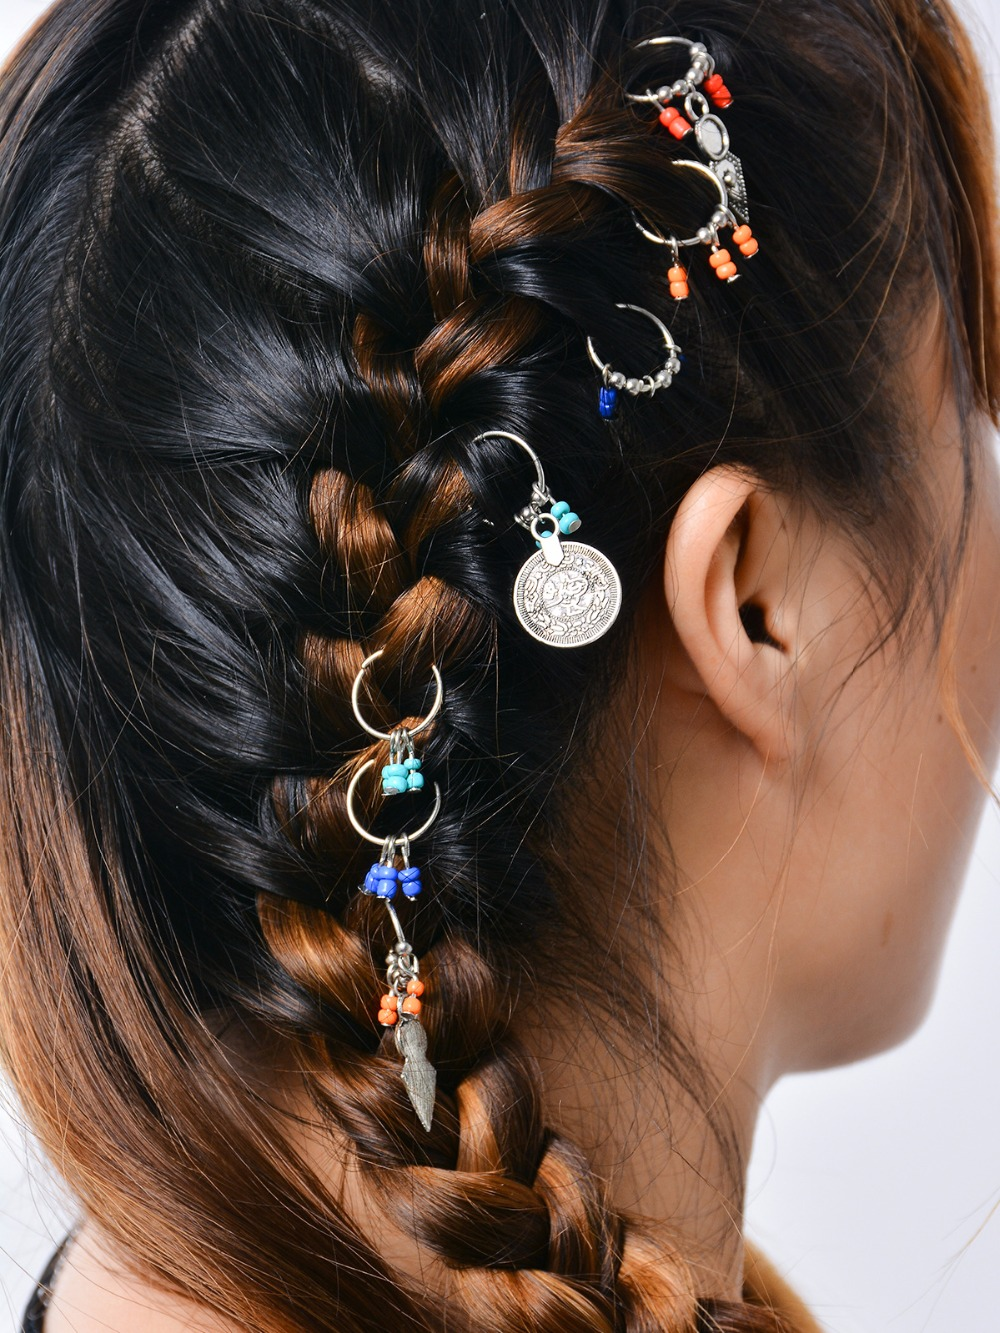 leaf snowflower metal hair clips for women hair accessories cintillos hip hop headdress hairgrips tiara hair jewelry in Hair Jewelry from Jewelry Accessories